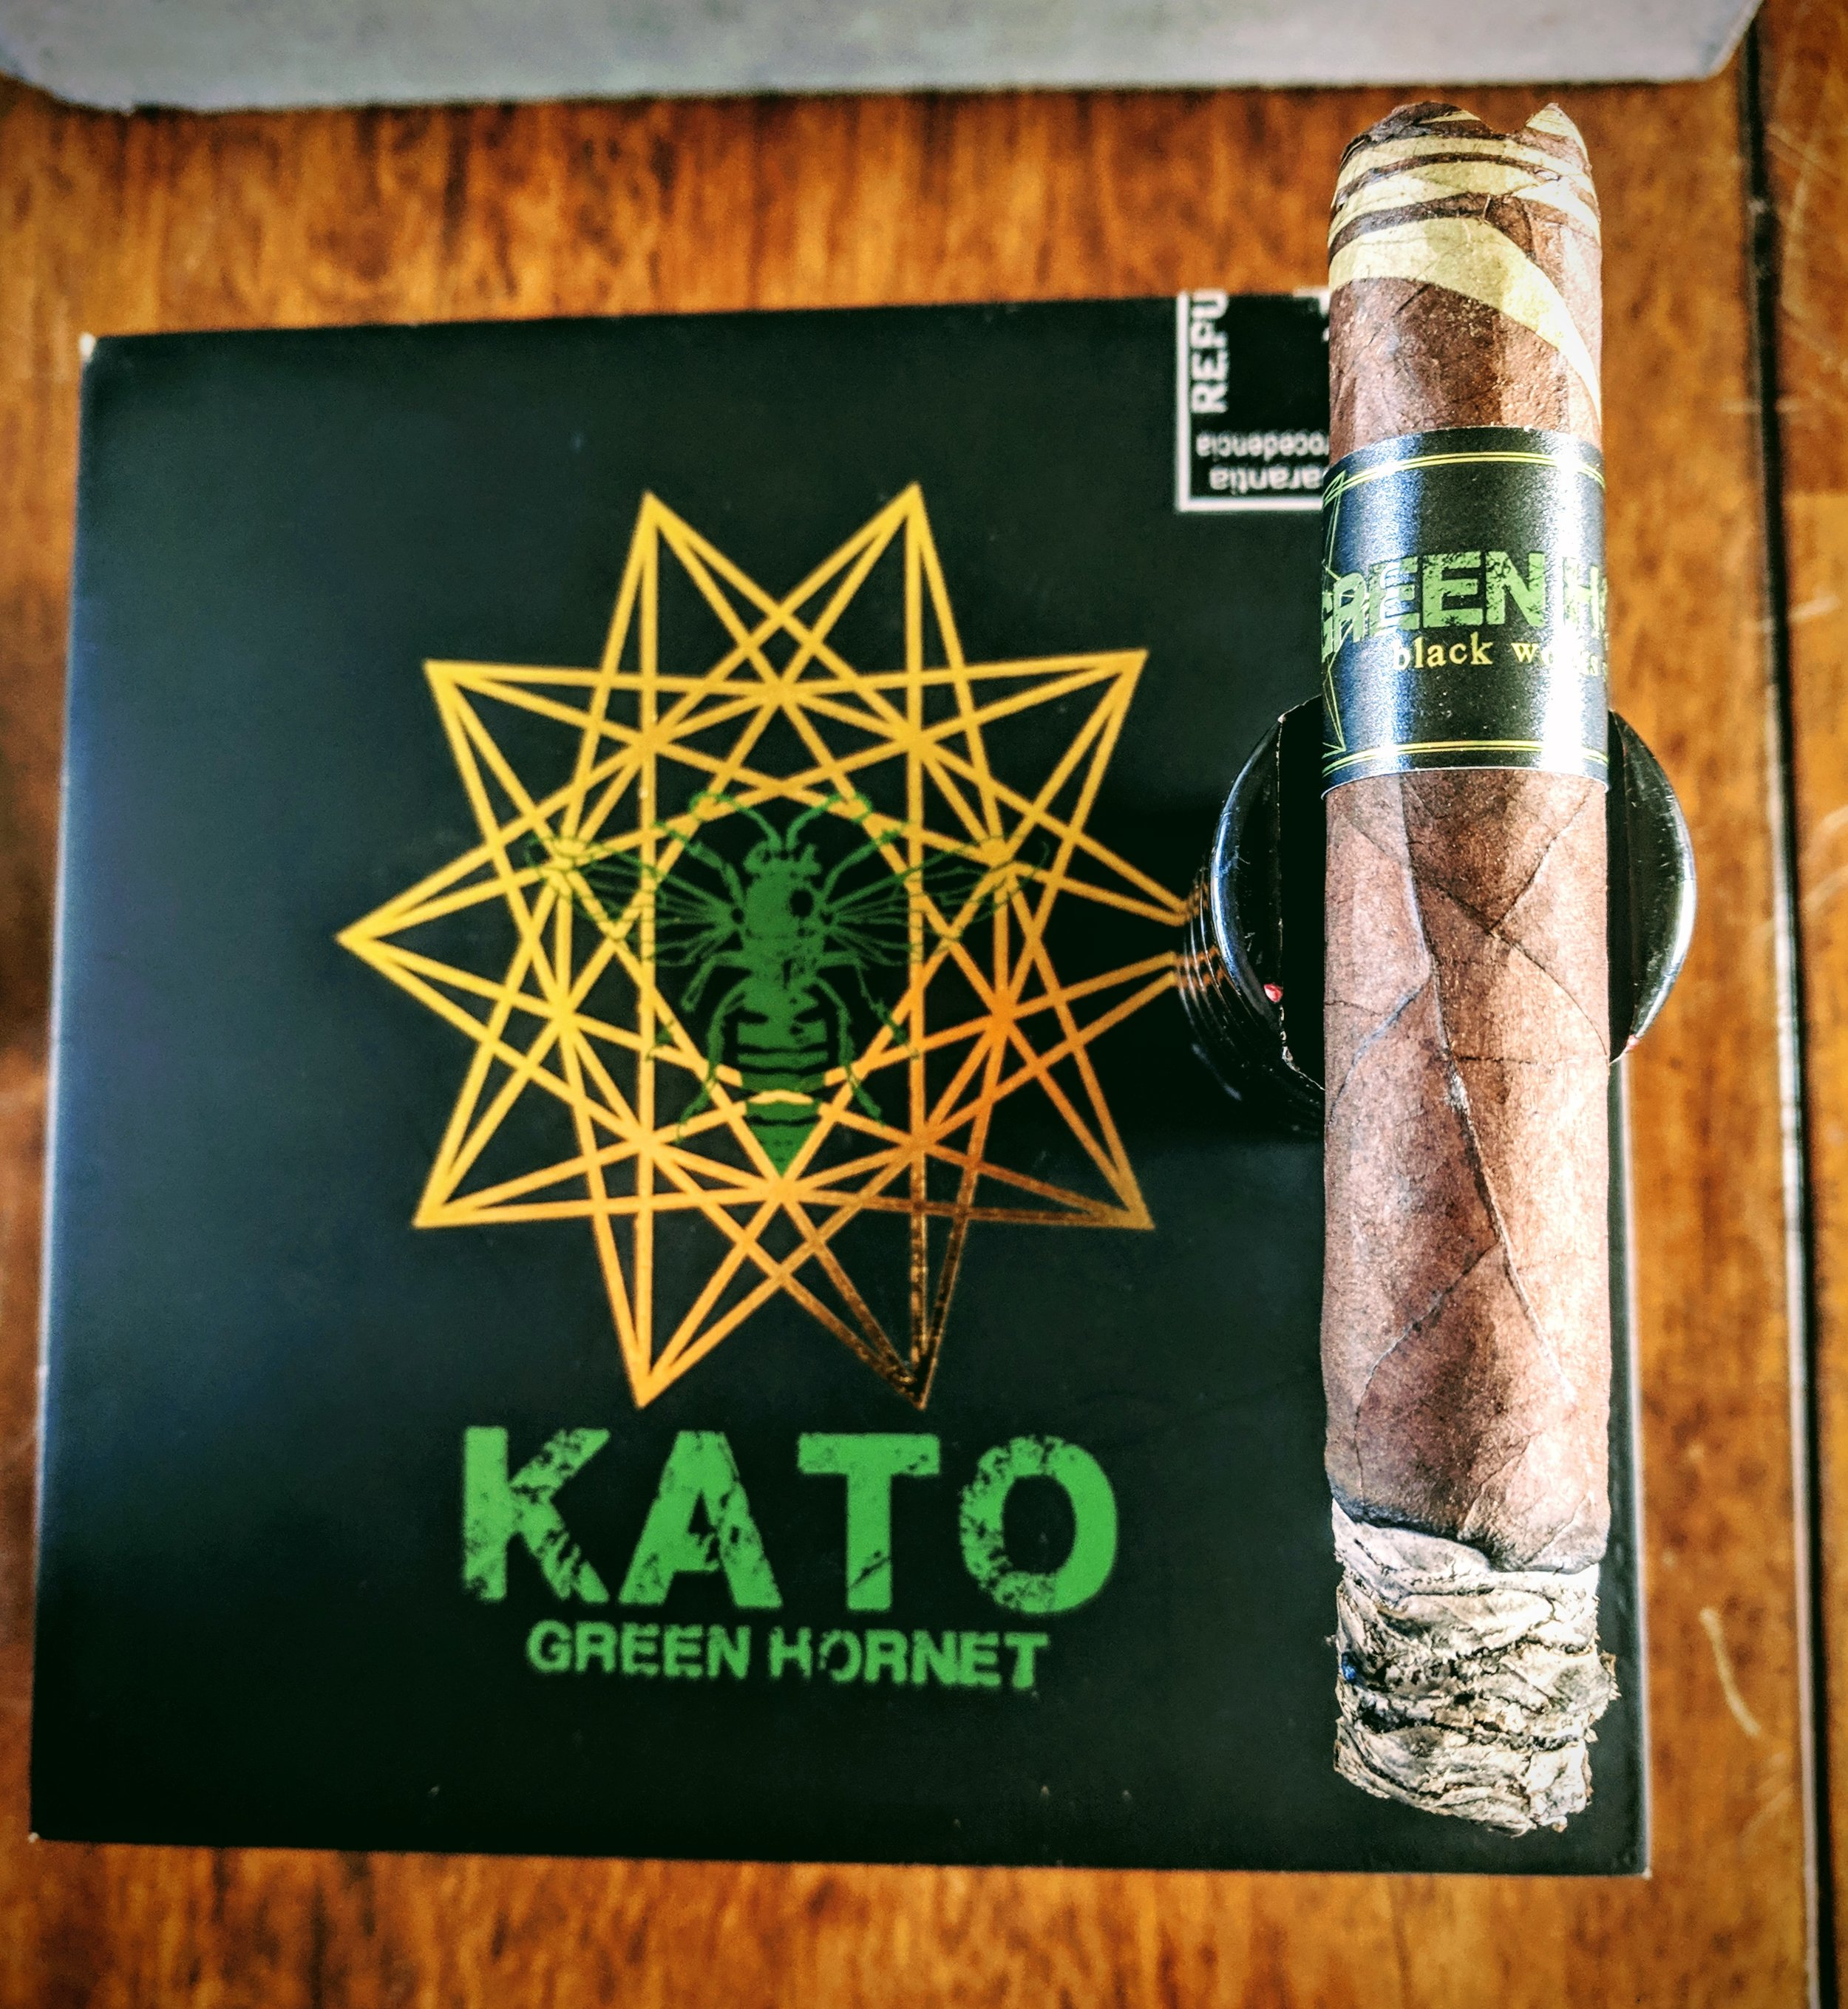 KATO KILLED IT. - Rating: 9.7 / 10.0It's no wonder that once these hit people's lips, BLTC was overwhelmed by mobs of cigar smokers demanding more beyond event availability. They listened and delivered!For around $9 these are easily one of the best bangs you'll ever get for your buck. If full-bodied, complex cigars are your thing, you owe it to yourself to track some Katos down and load up. They are a phenomenal cigar with flavors out the wazoo and IMPECCABLE construction. Even more amazing is that these characteristics are all wrapped up in one of the most beautiful cigars you will ever lay eyes on.